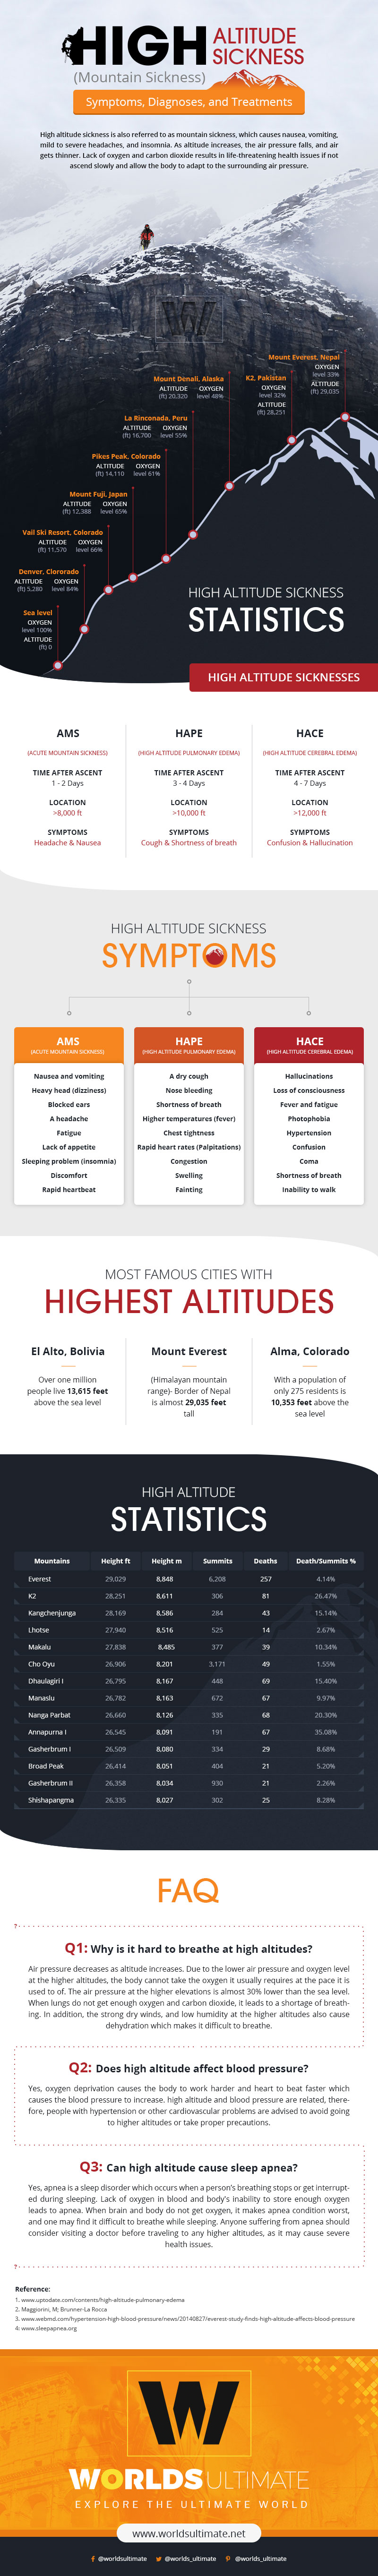 Altitude Sickness Infographic - Symptoms, Diagnoses, and Treatments